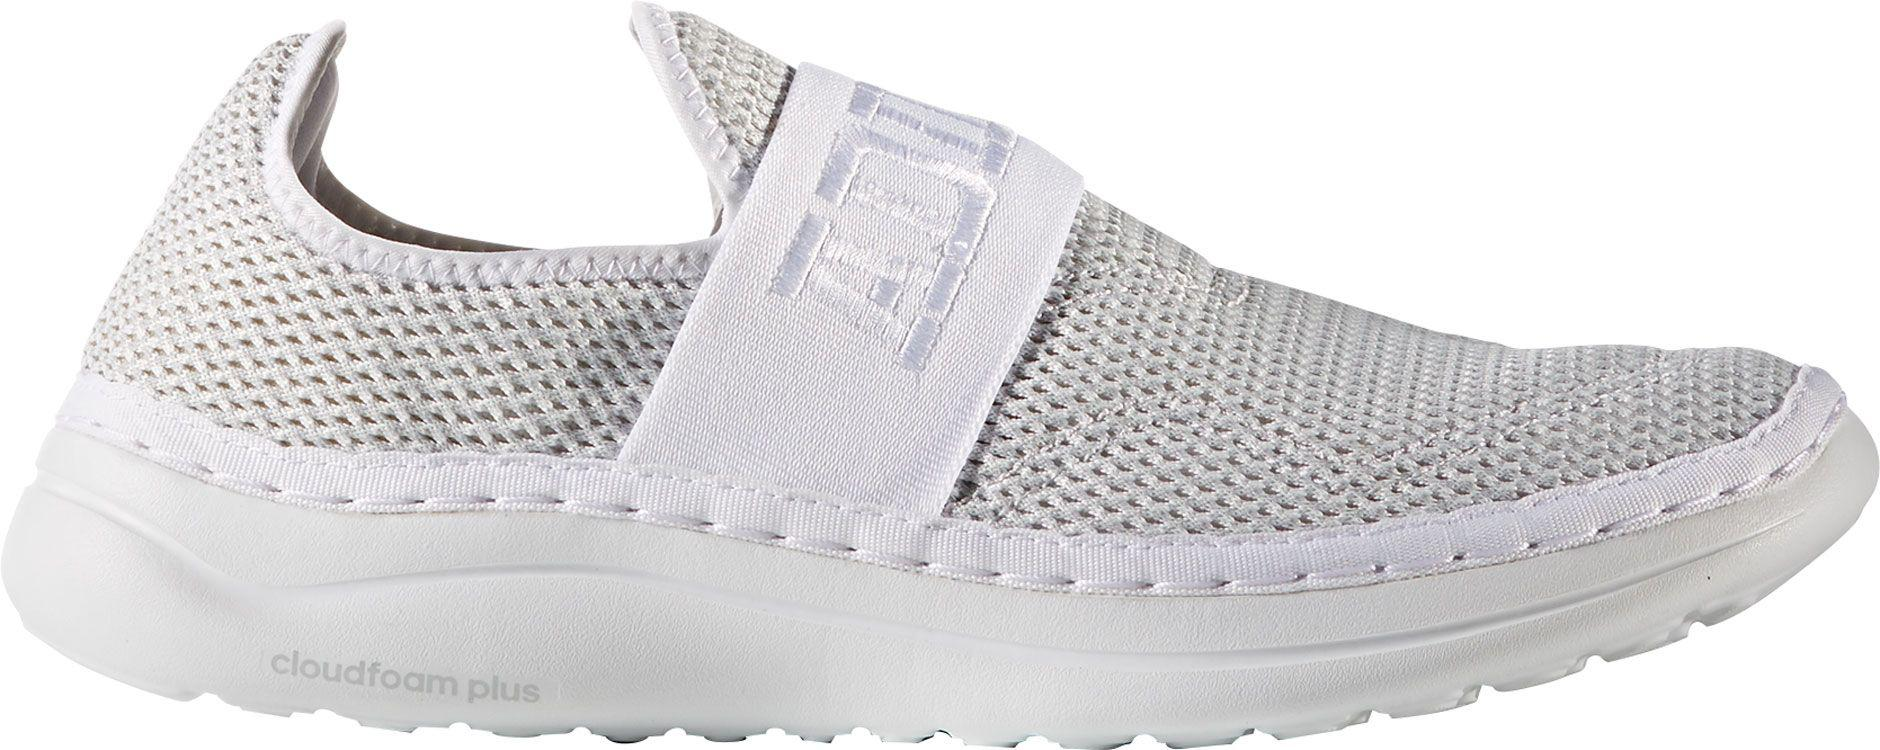 Lyst - adidas Cloudfoam Plus Zen Recovery Shoes for Men b5da01a8f